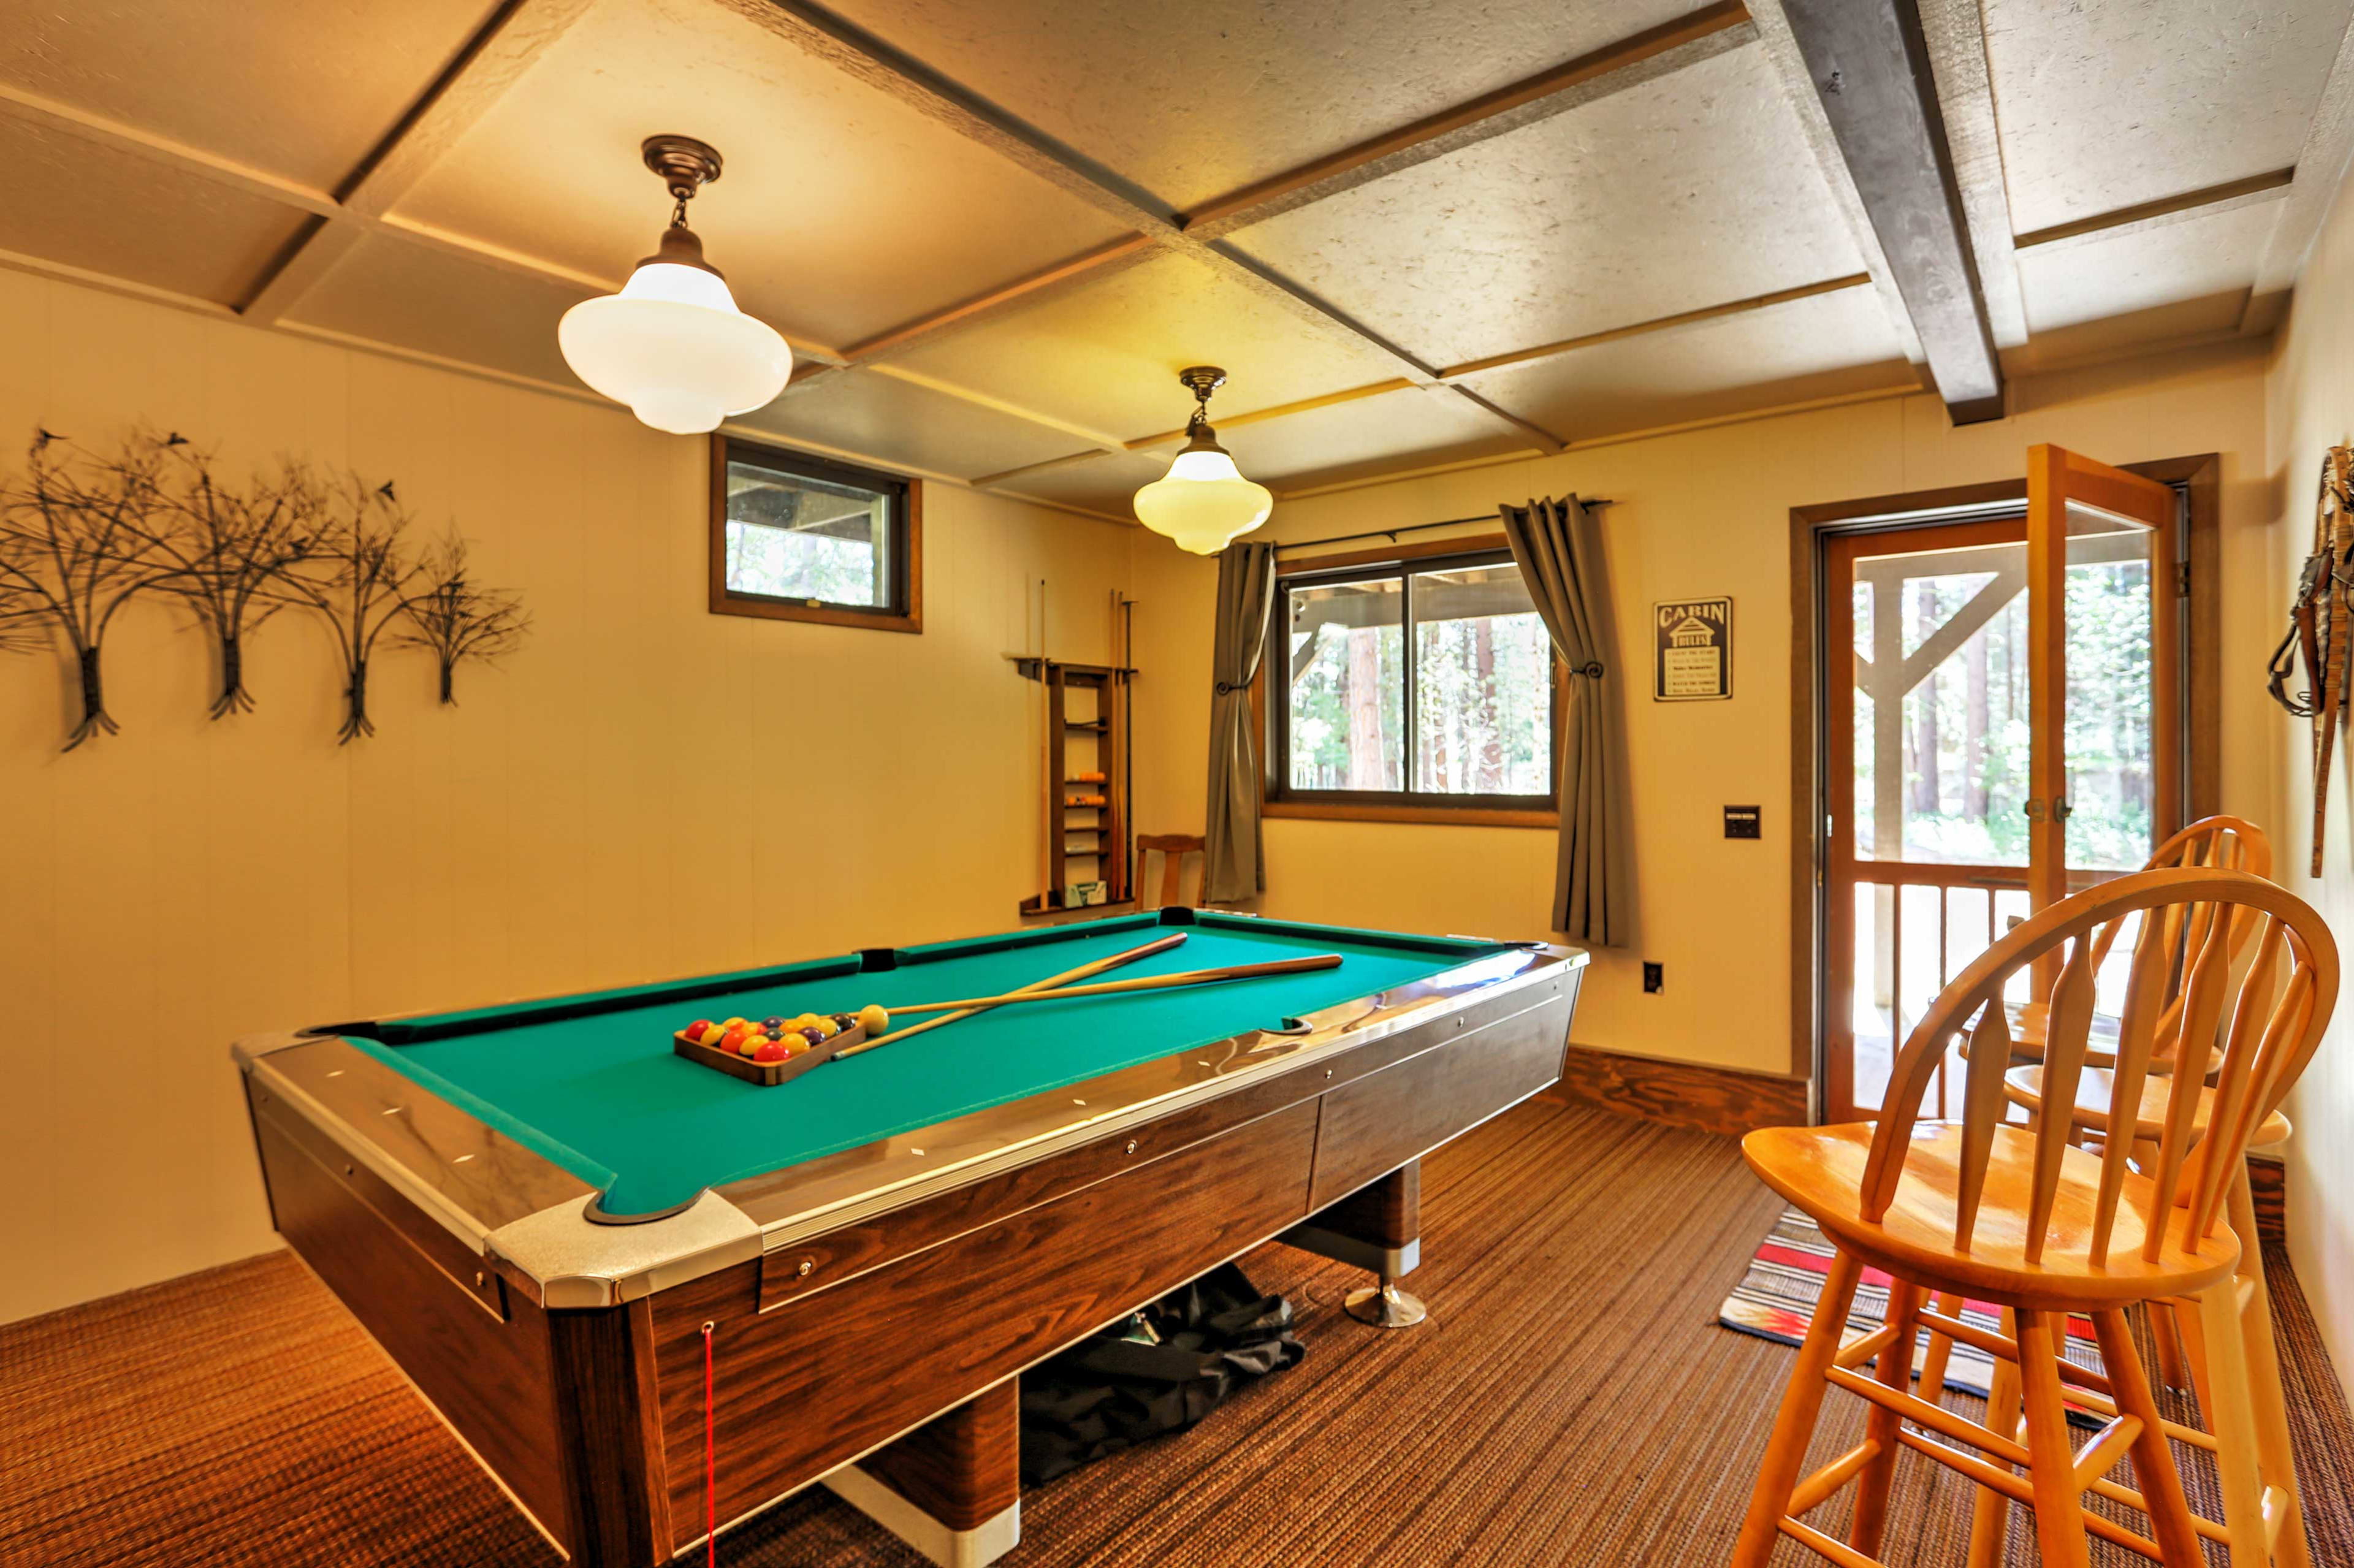 Challenge your travel companions to a game of pool or ping pong in the basement.